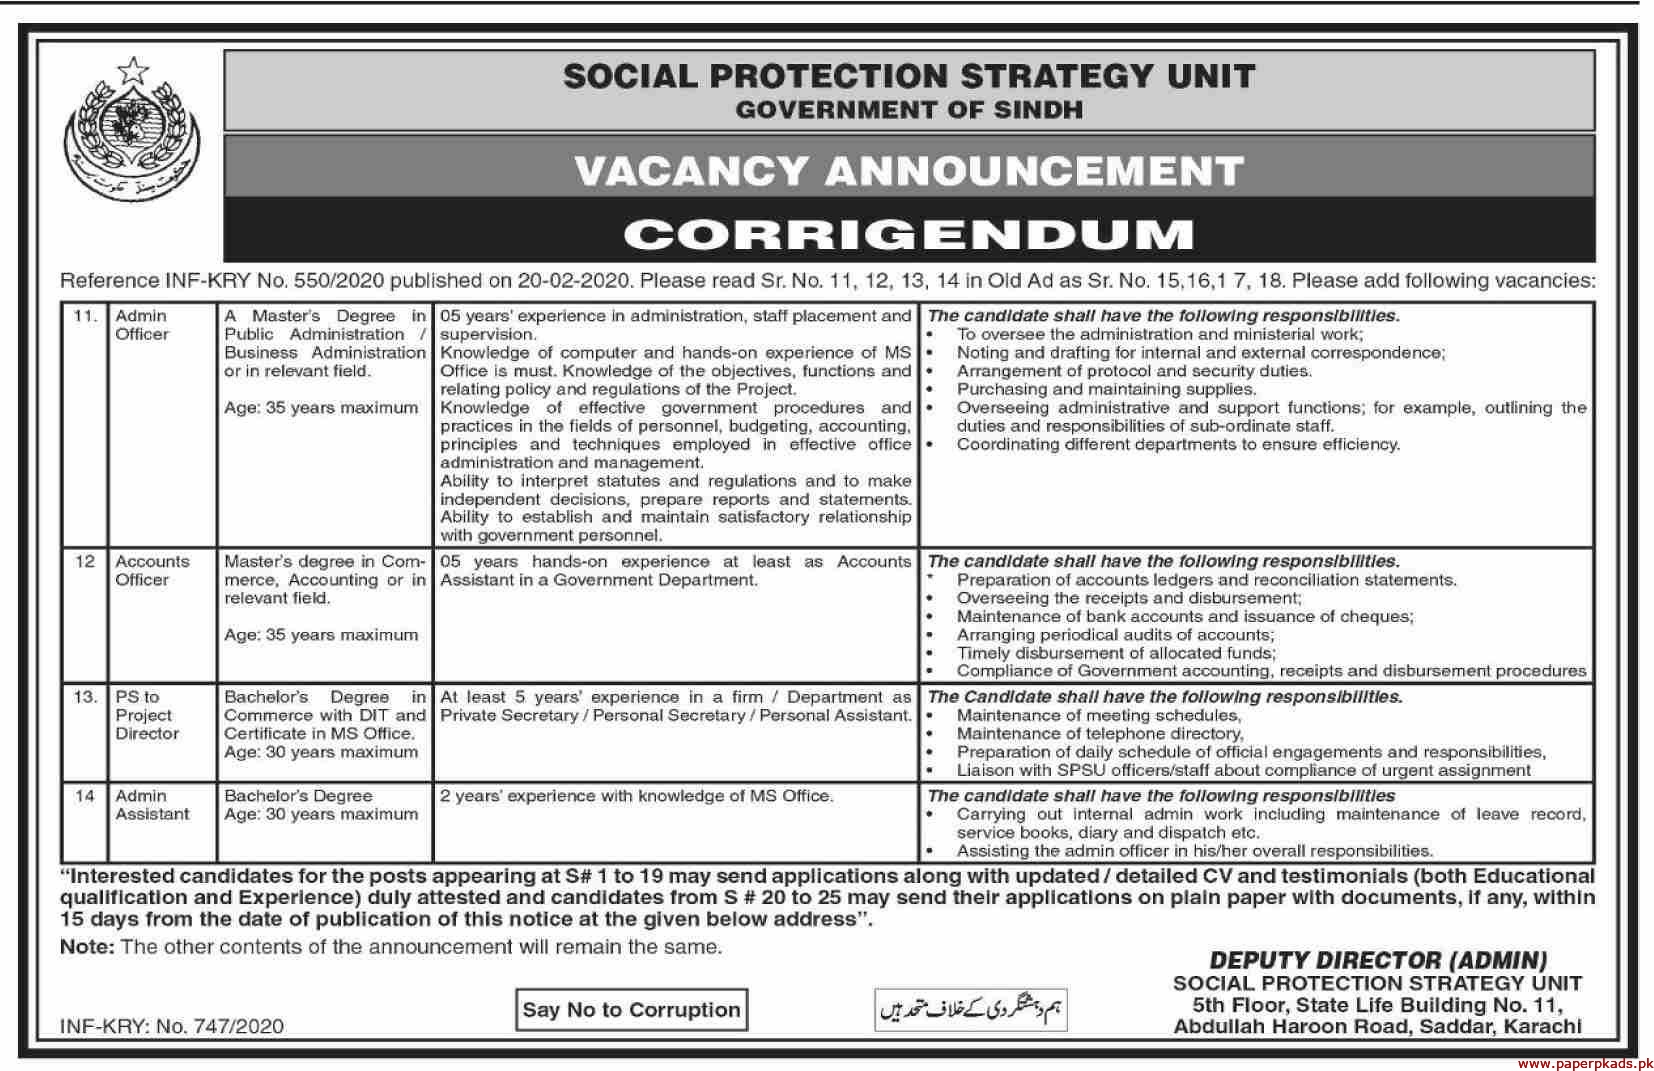 Social Protection Strategy Unit Government of Sindh Jobs 2020 Latest